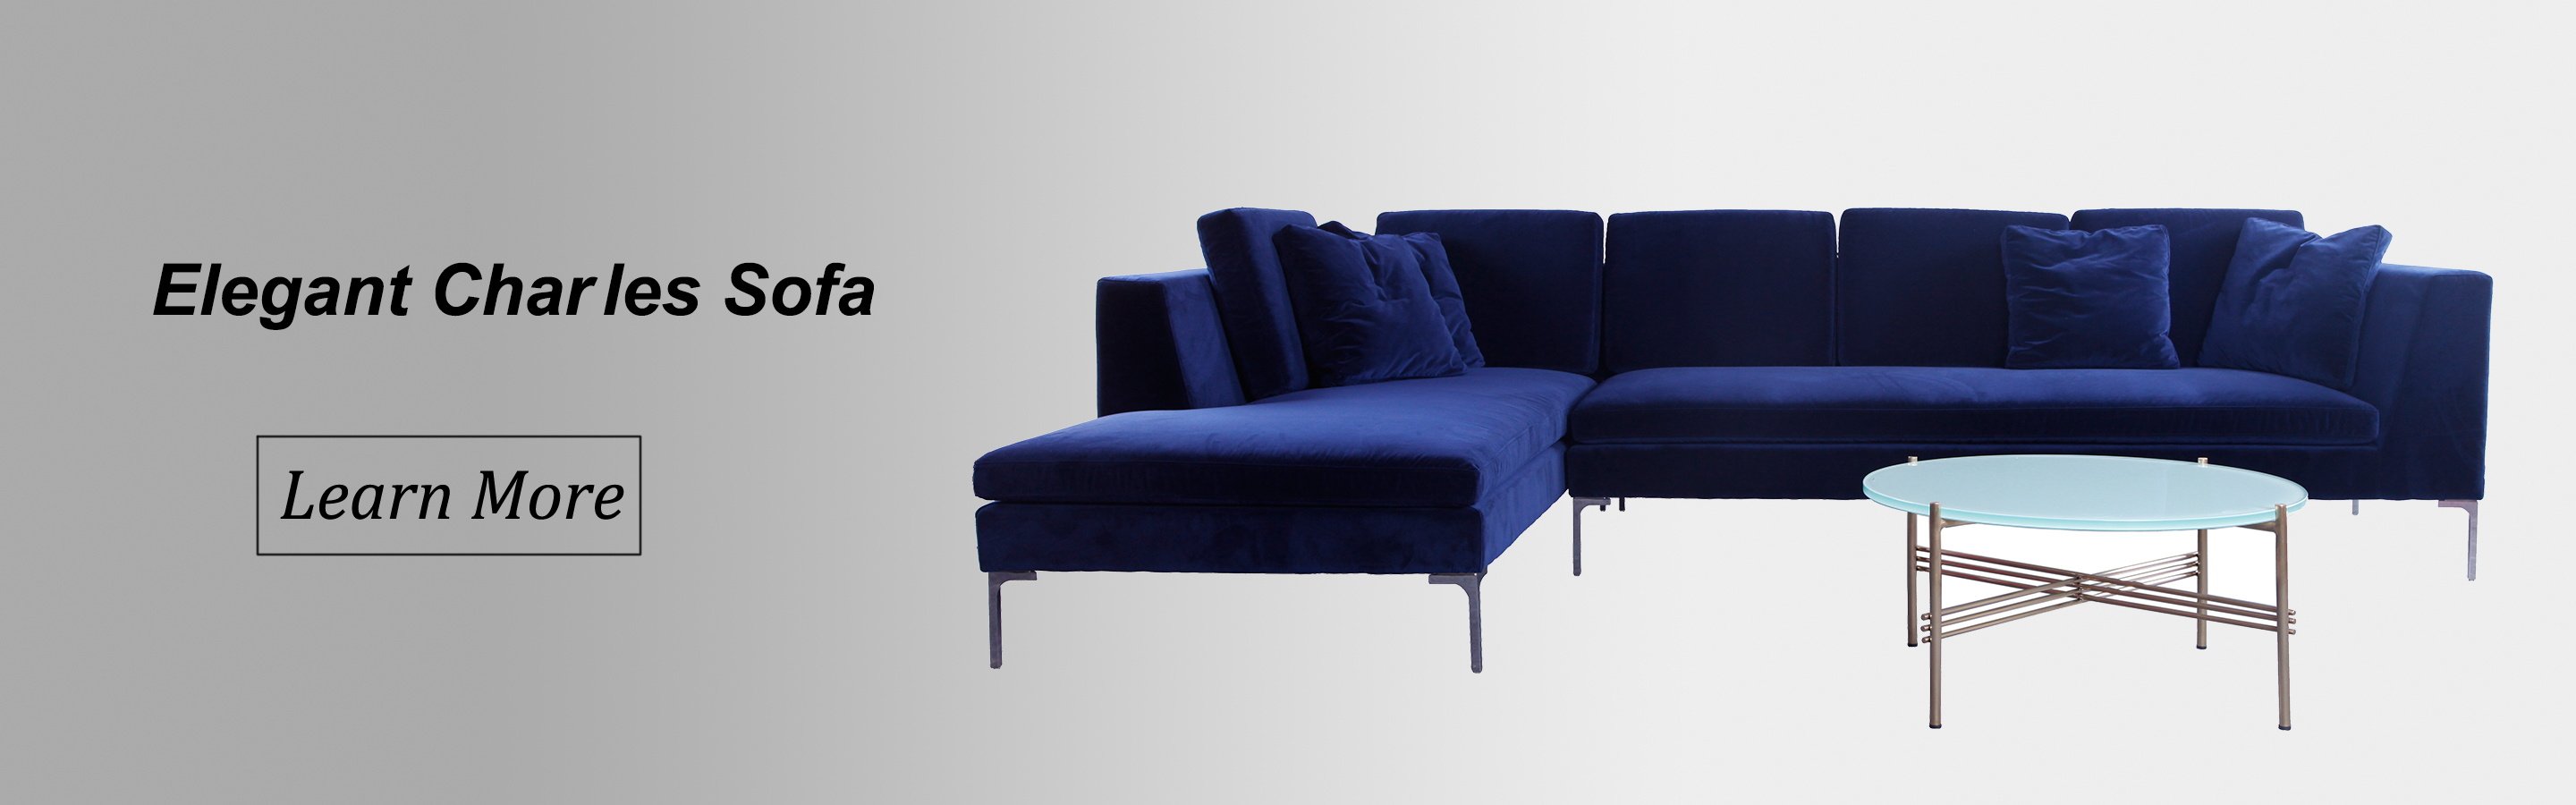 Modern Classic Furniture - Wholesale Leather Furniture -Furniture Supplier-Eames Chair